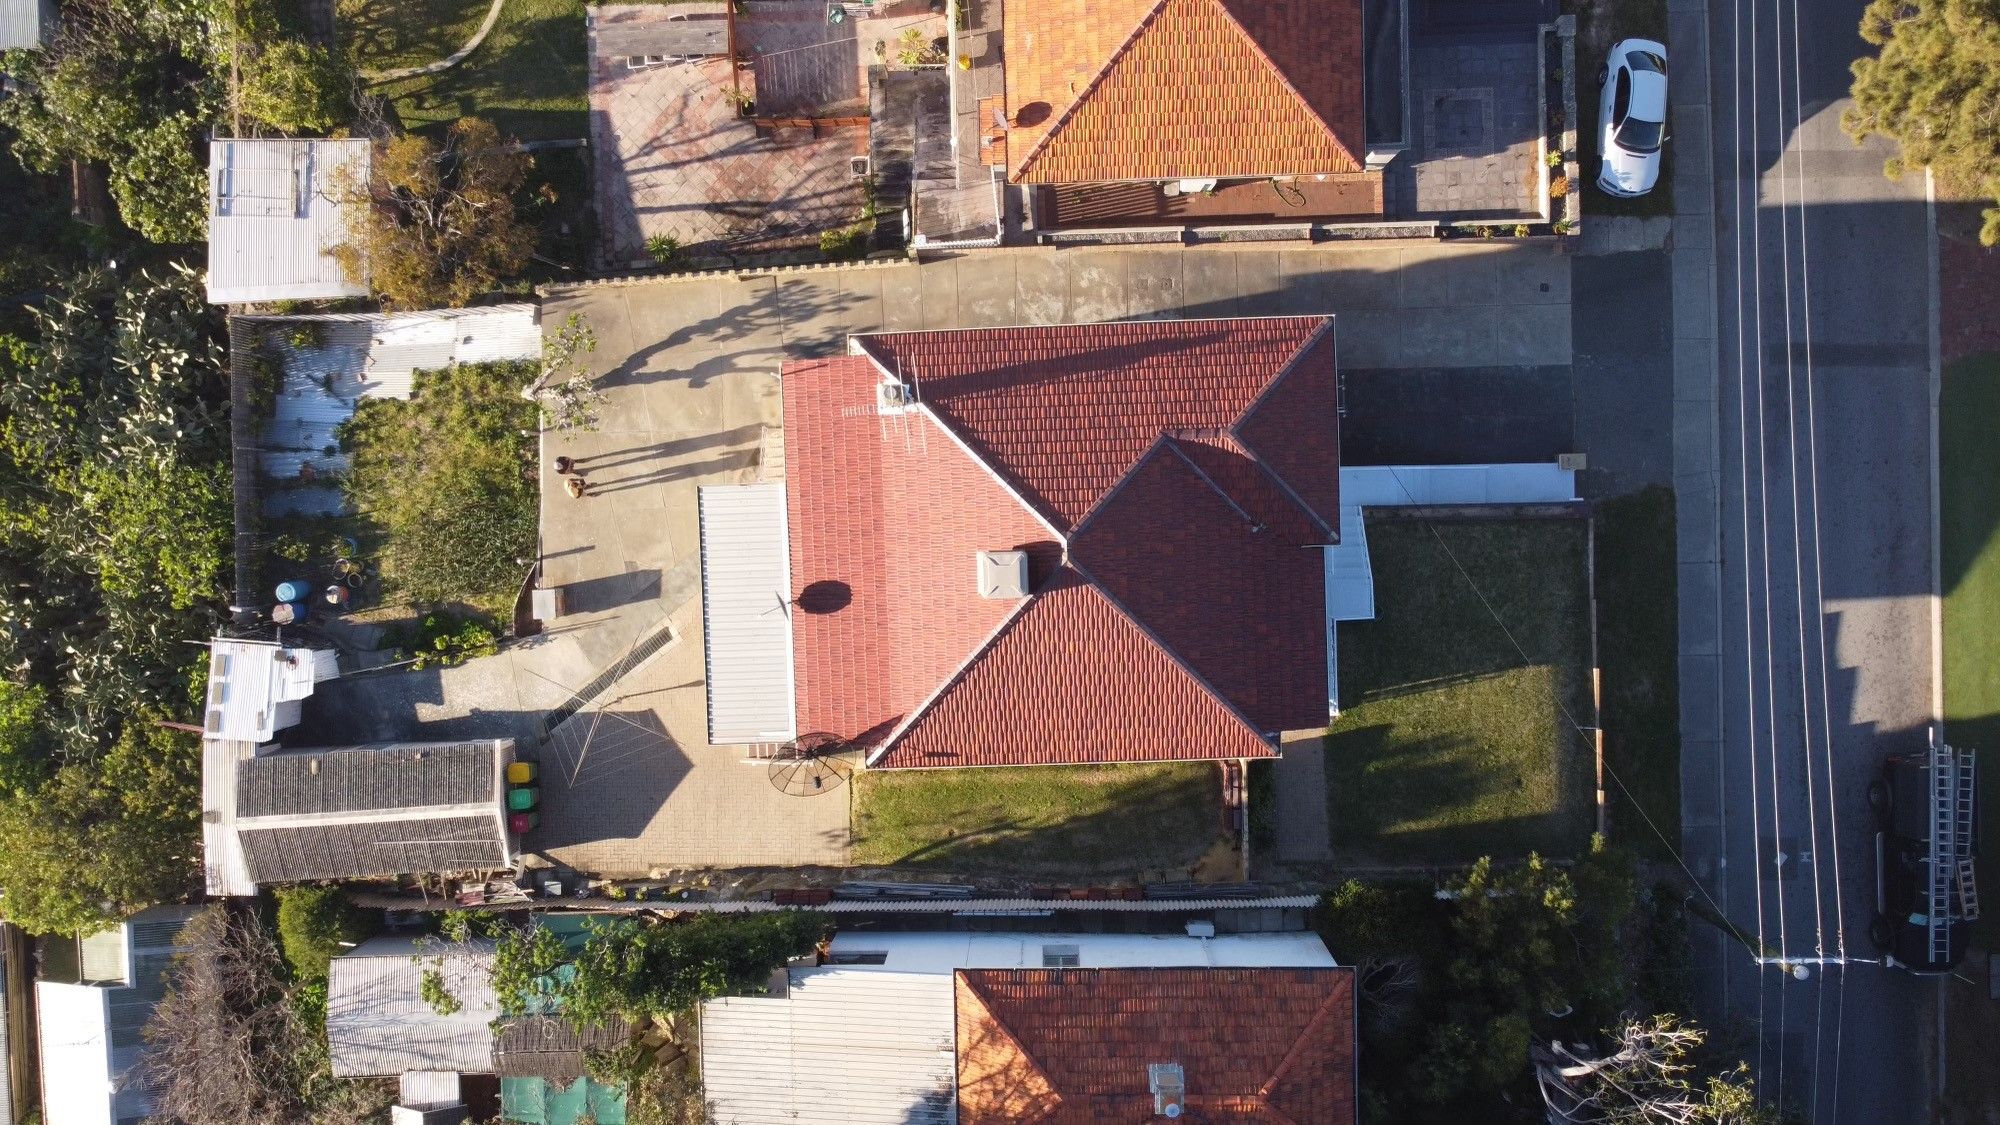 12 Sea View Street Beaconsfield - House For Sale - 23275472 - ACTON Projects